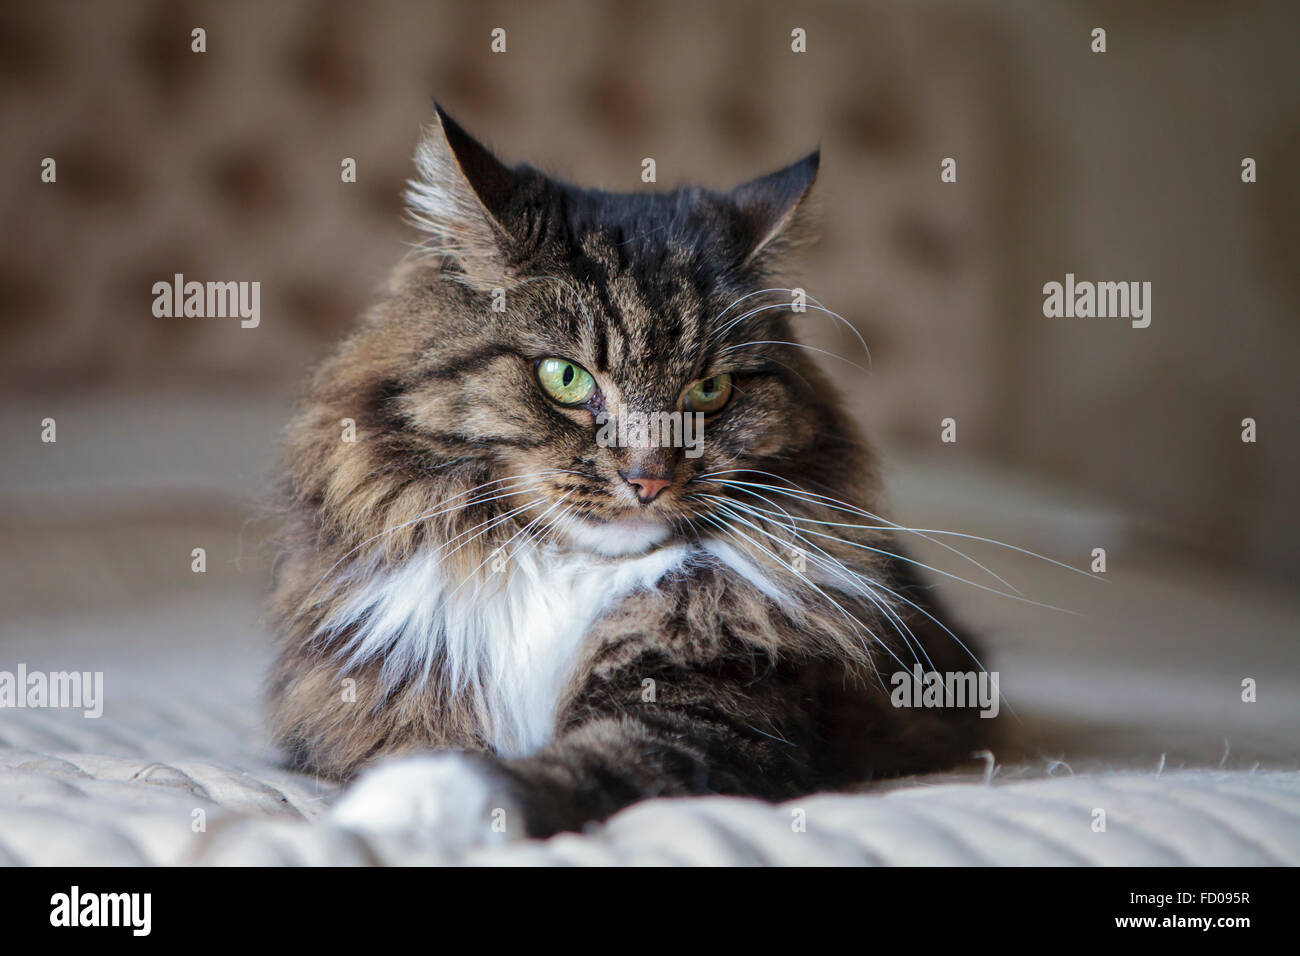 Long haired cat on the bed - Stock Image